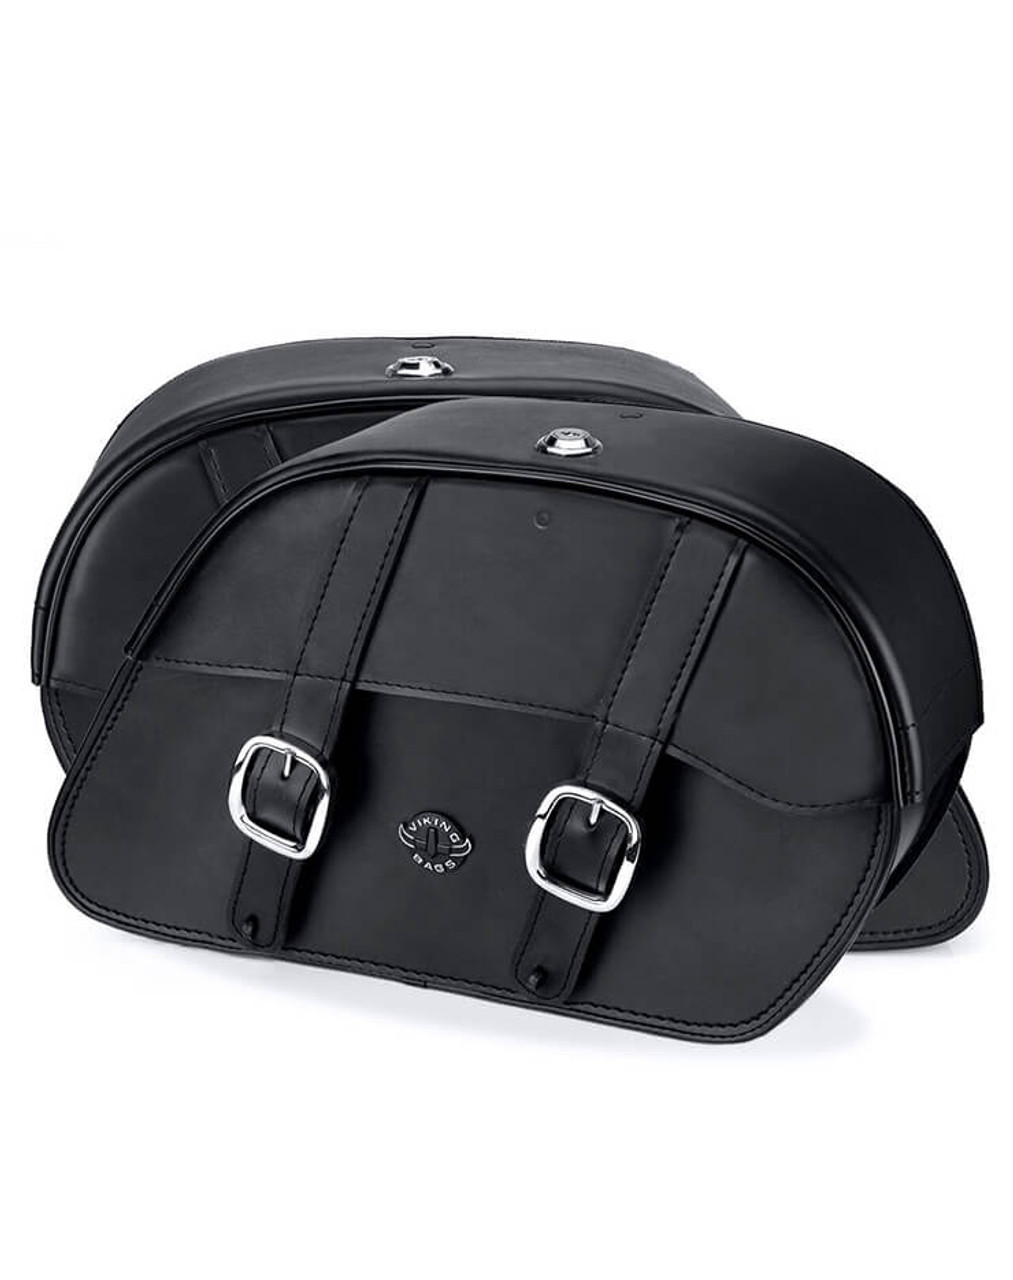 Viking Charger Slanted Medium Motorcycle Saddlebags For Harley Softail Night Train FXSTB Both bags View